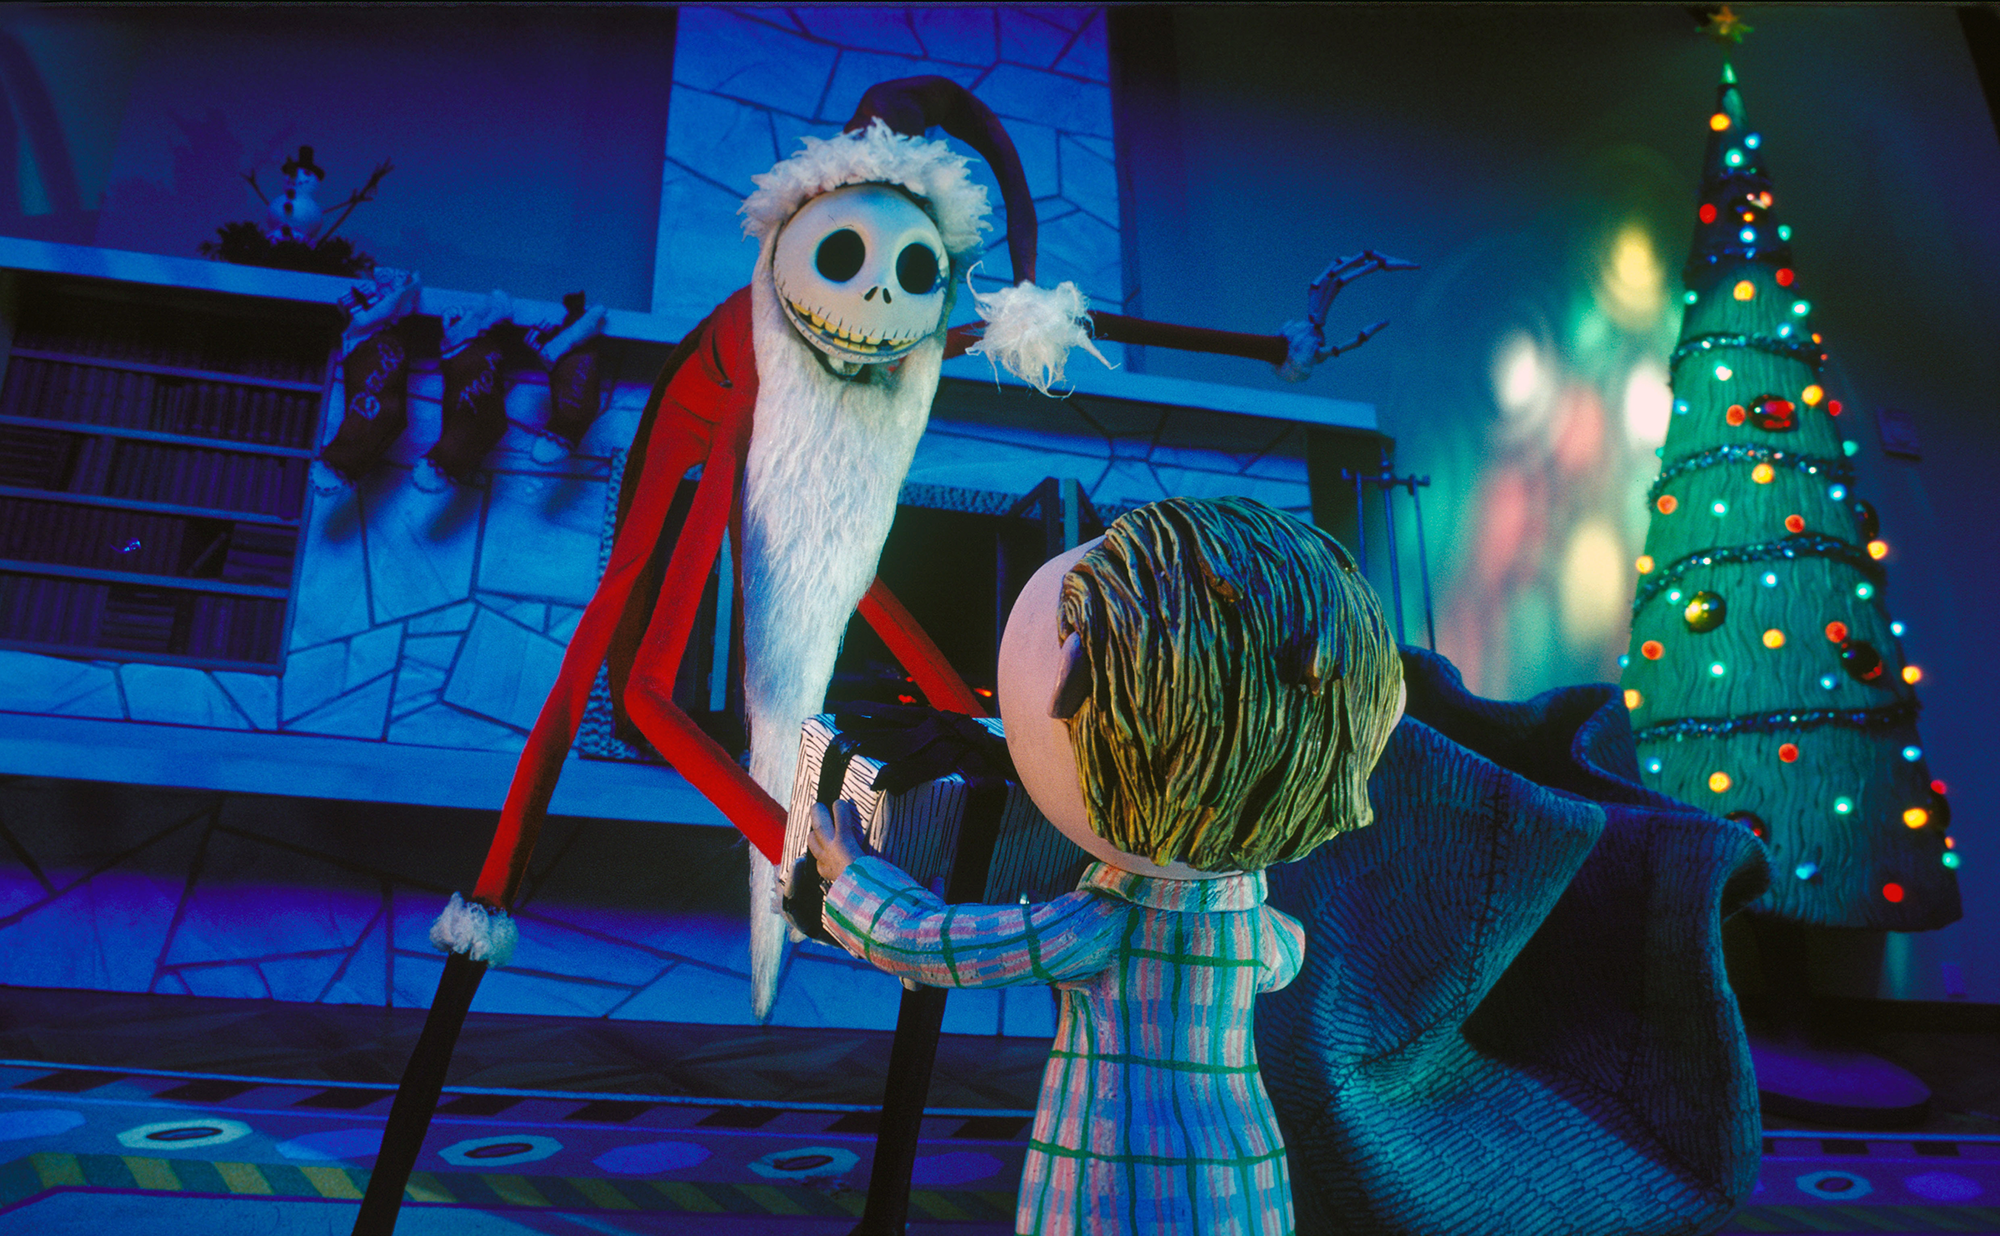 Best Christmas Horror Movies - Scary Movies to Watch During the Holidays